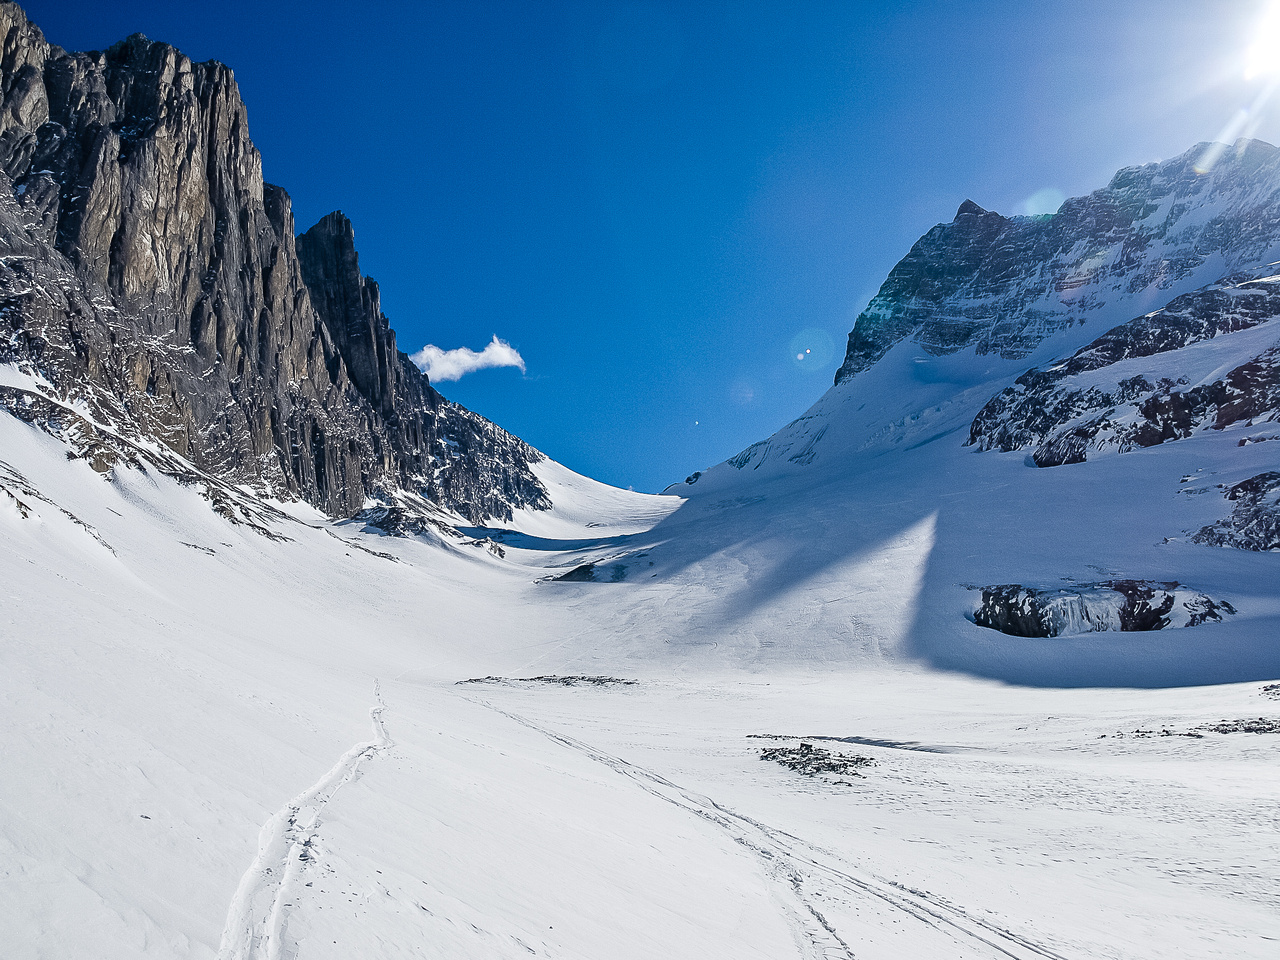 Skiing down the Robertson Glacier.